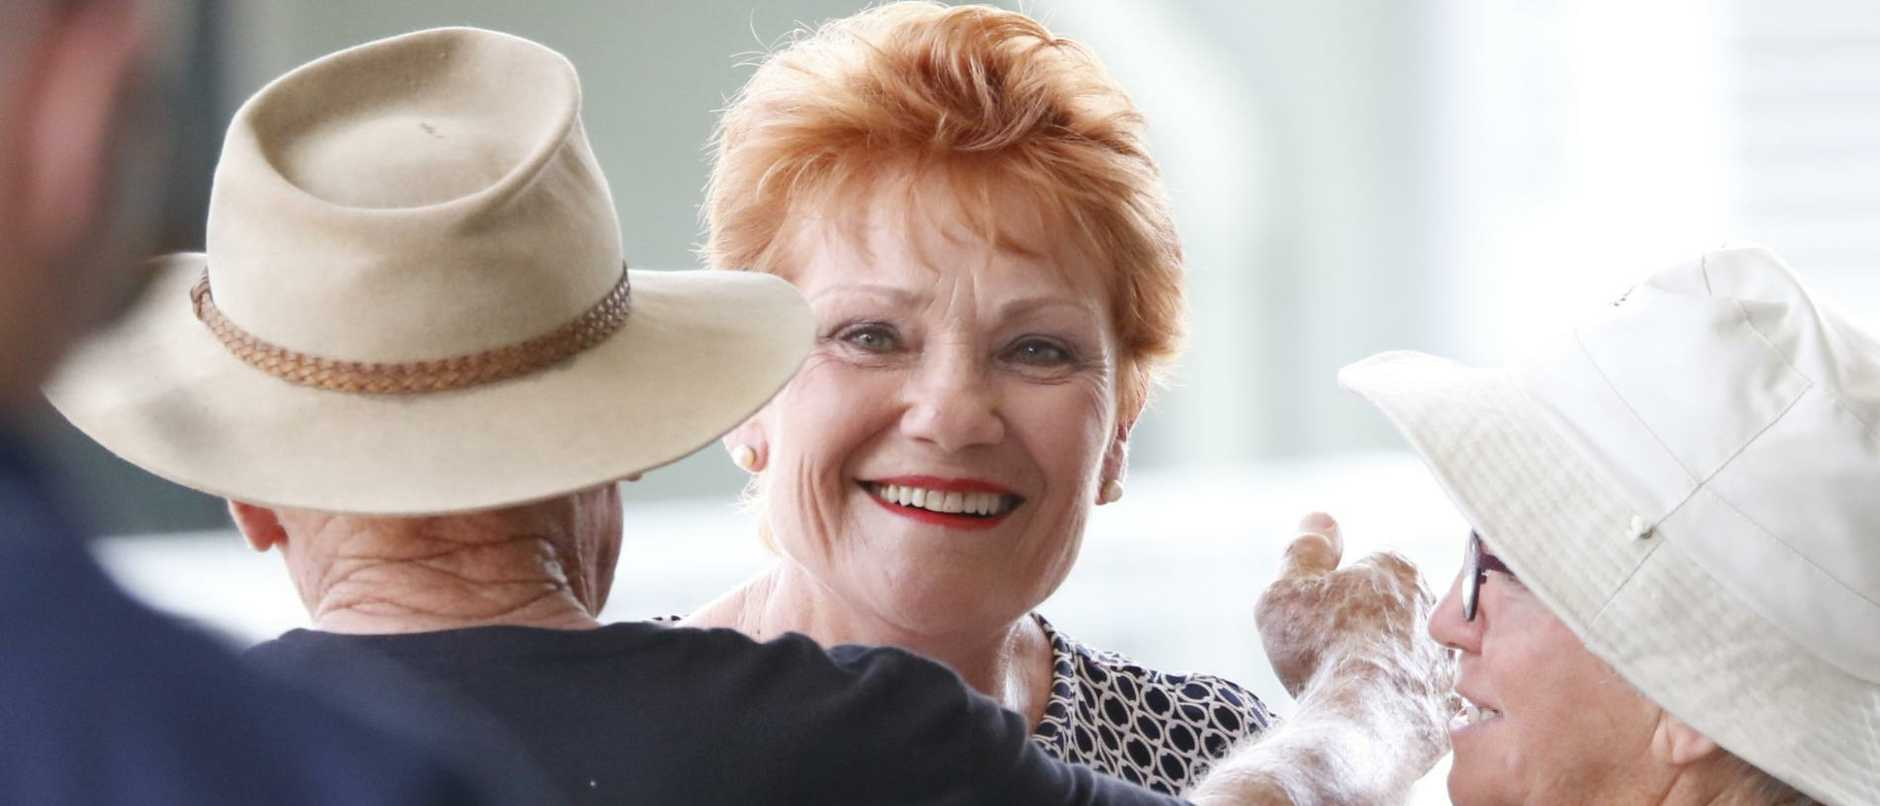 One Nation Leader, Pauline Hanson mixing with the public at Glenmore State High School